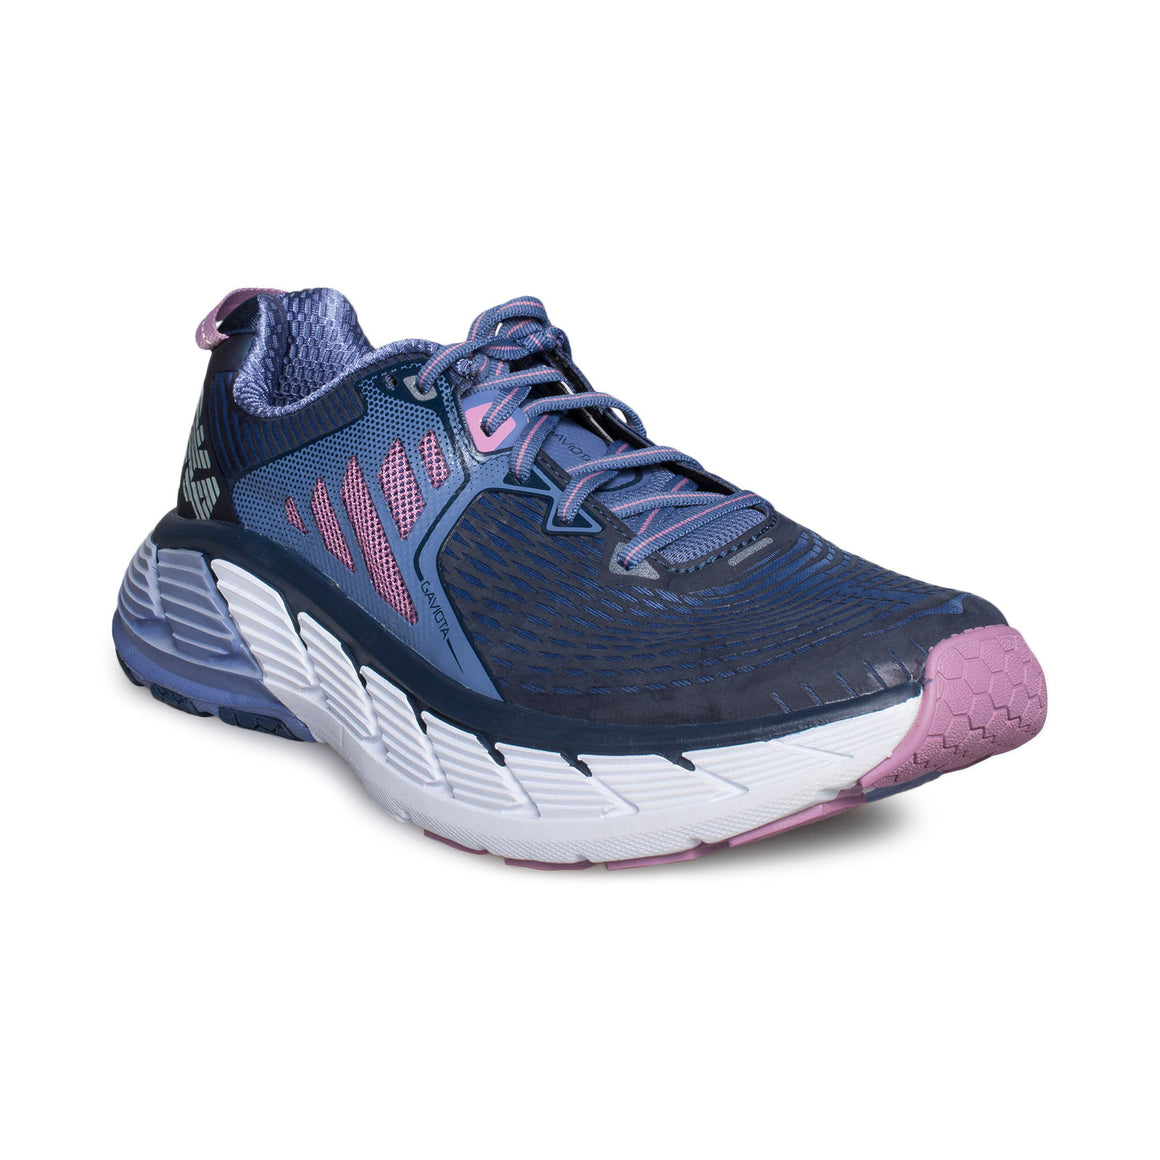 Hoka One One Gaviota Marlin / Dress Blue Running Shoes - Women's